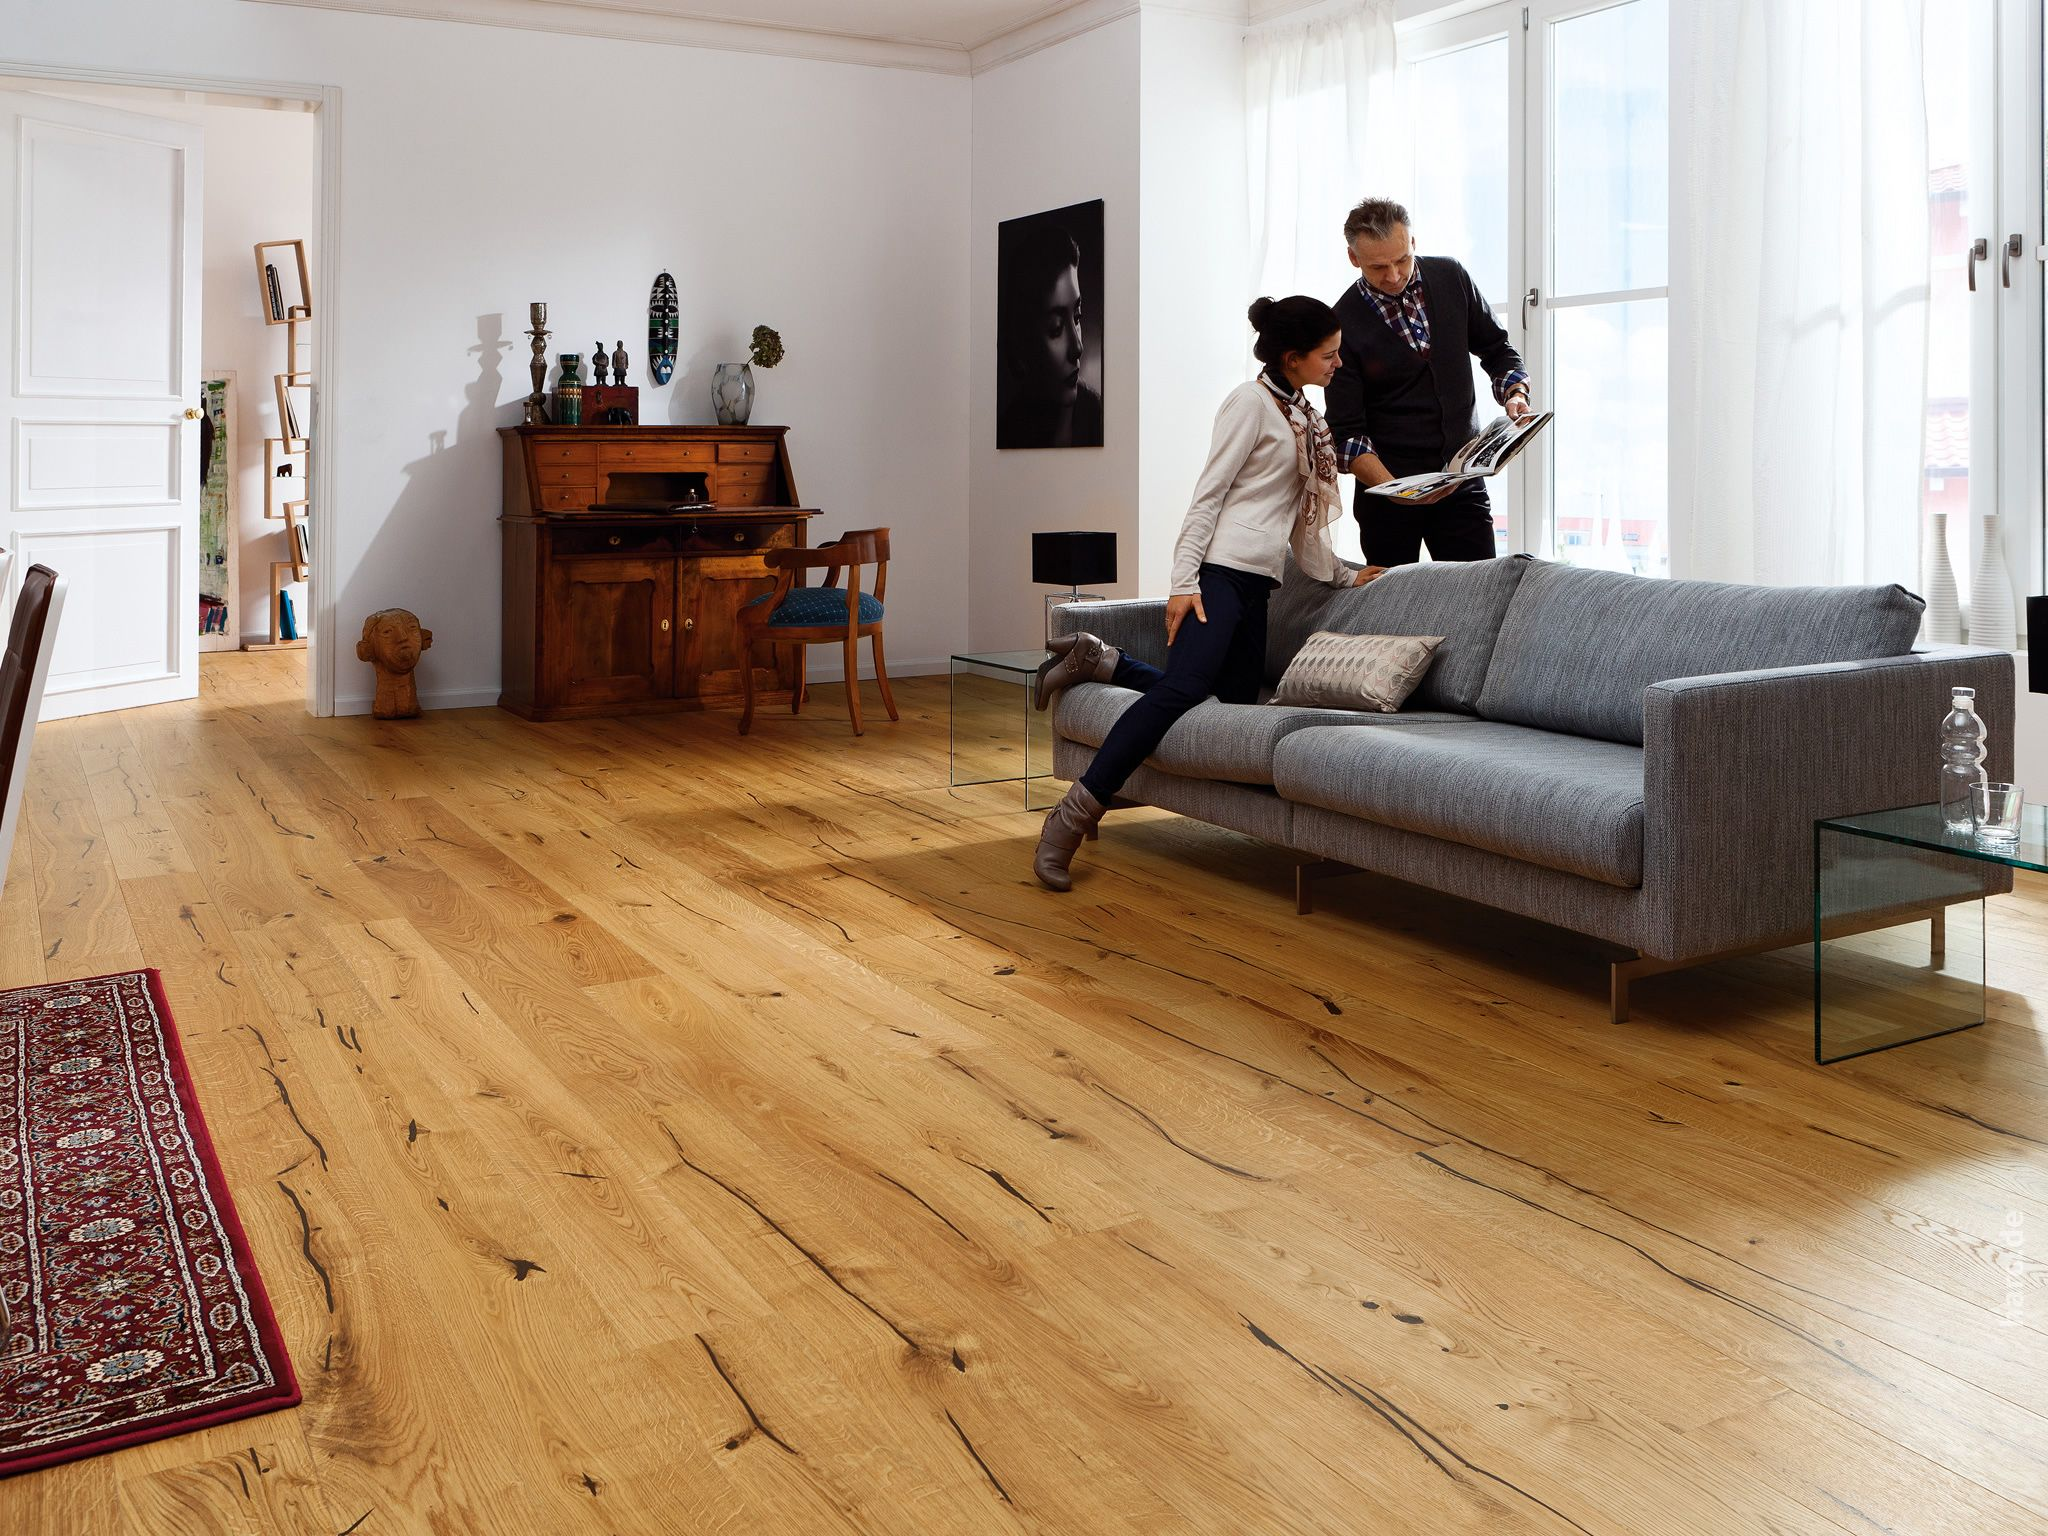 haro parquet 4000 plank 1 strip 4v oak alabama brushed. Black Bedroom Furniture Sets. Home Design Ideas